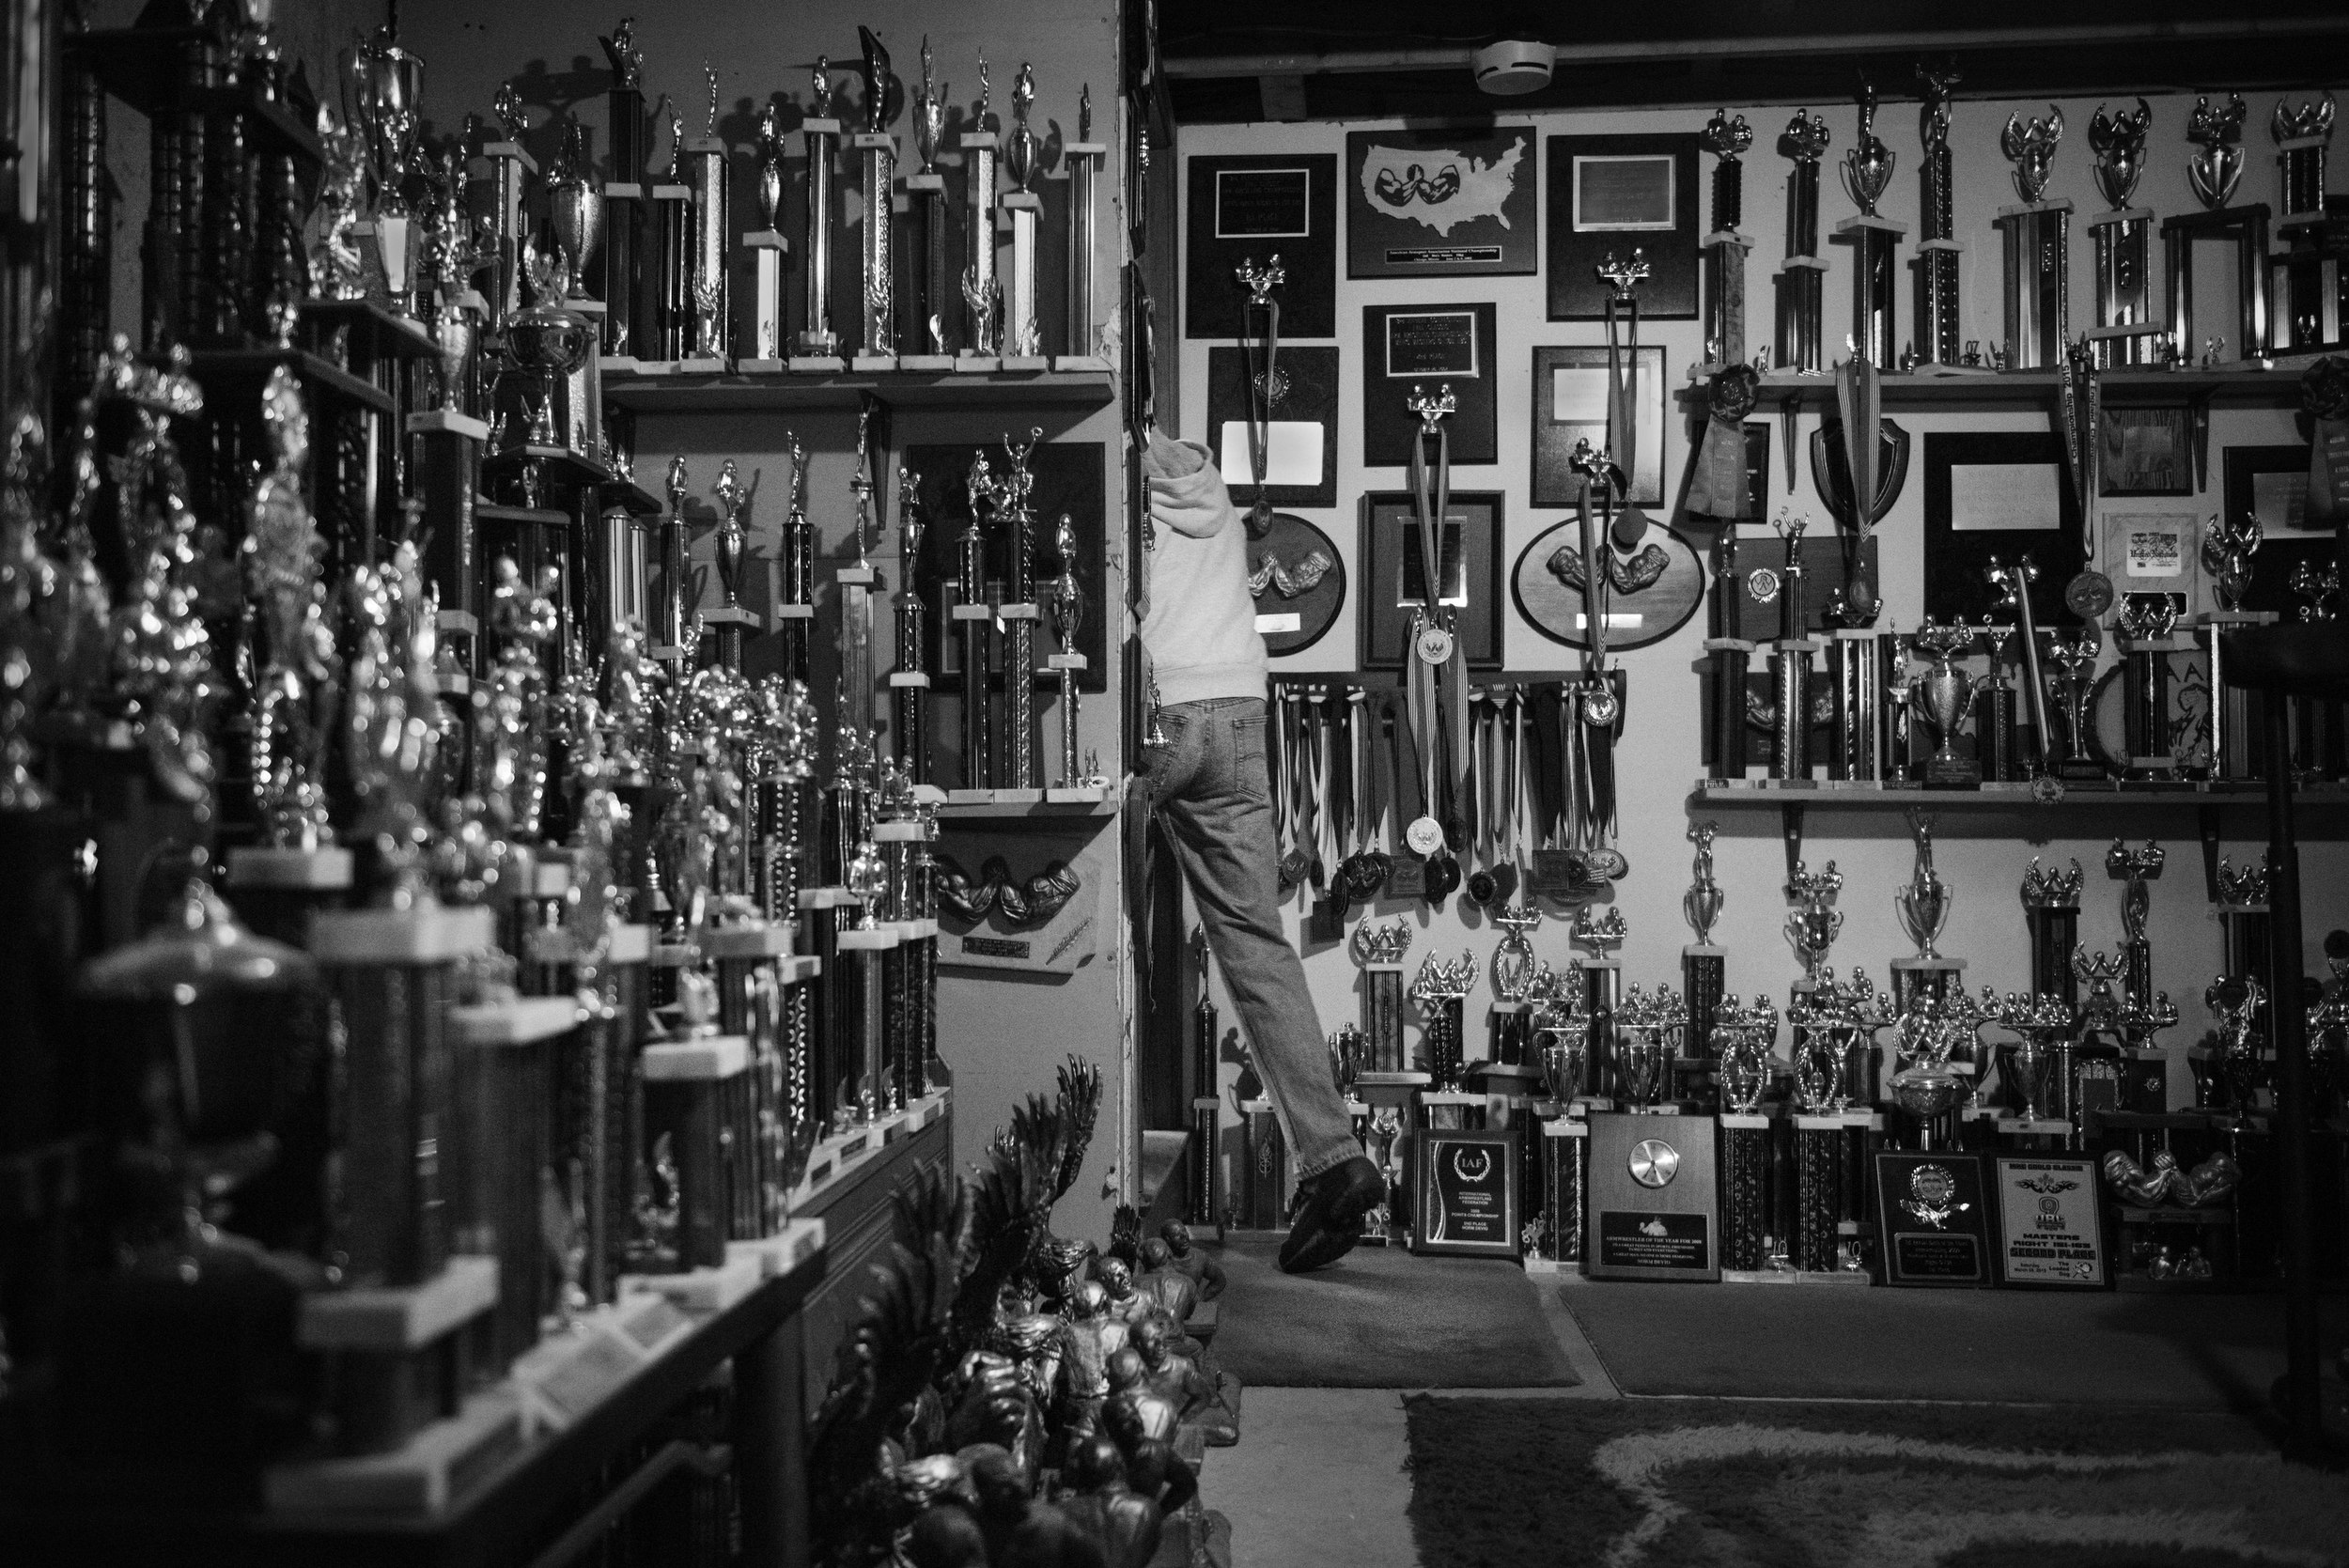 Devio has won countless tournaments during his 40 years in the sport. He has started giving away more than 500 trophies to friends and family members who come to visit. March 12, 2016. (Photo by Adam Glanzman/GroundTruth).